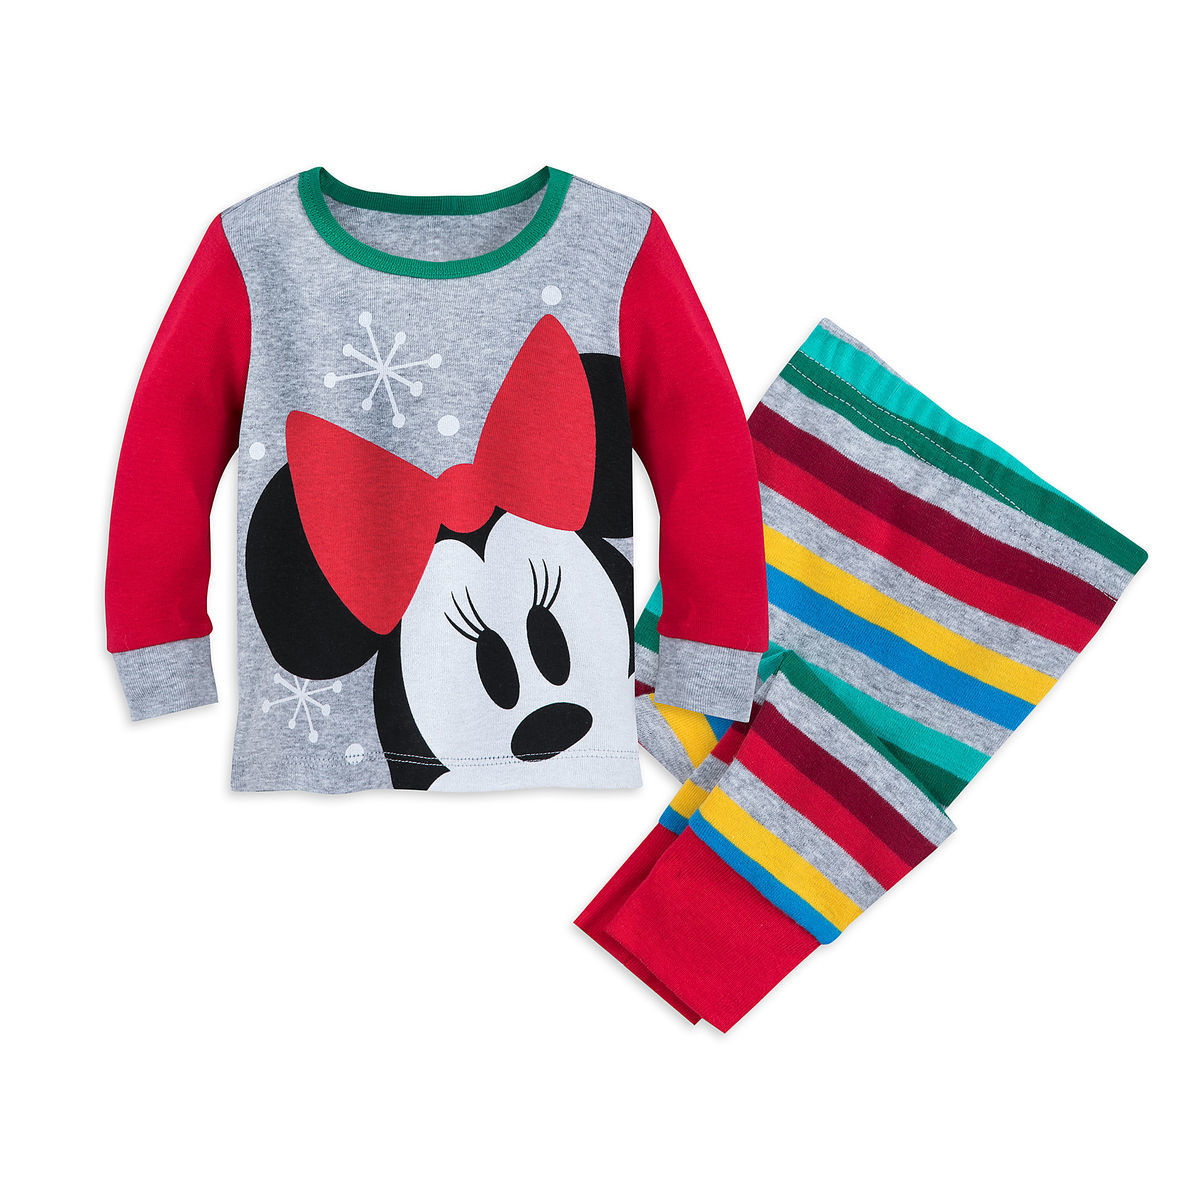 f7cdf4a724 Product Image of Minnie Mouse Holiday PJ PALS for Baby   1